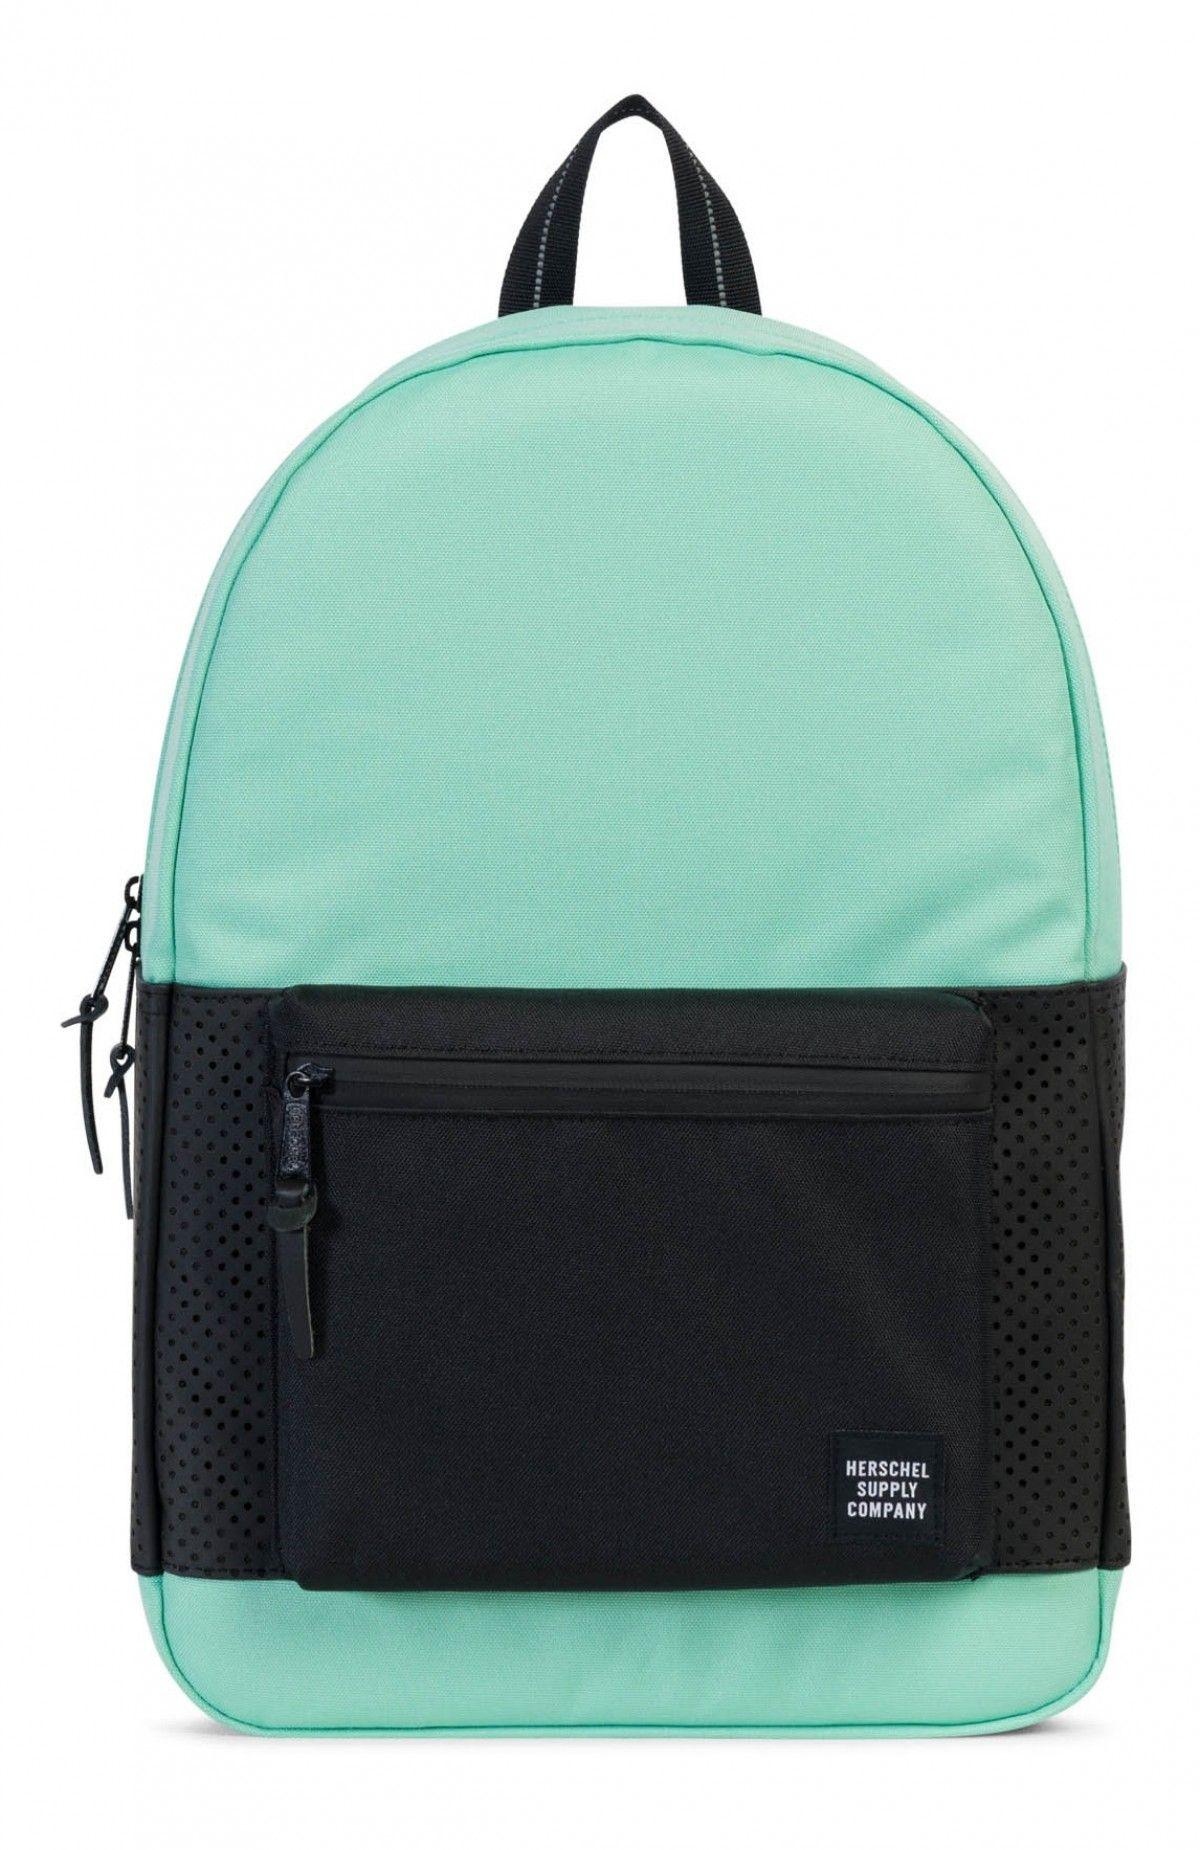 5f920418d9a Herschel Settlement Backpack Aspect Poly Lucite Green Black ...